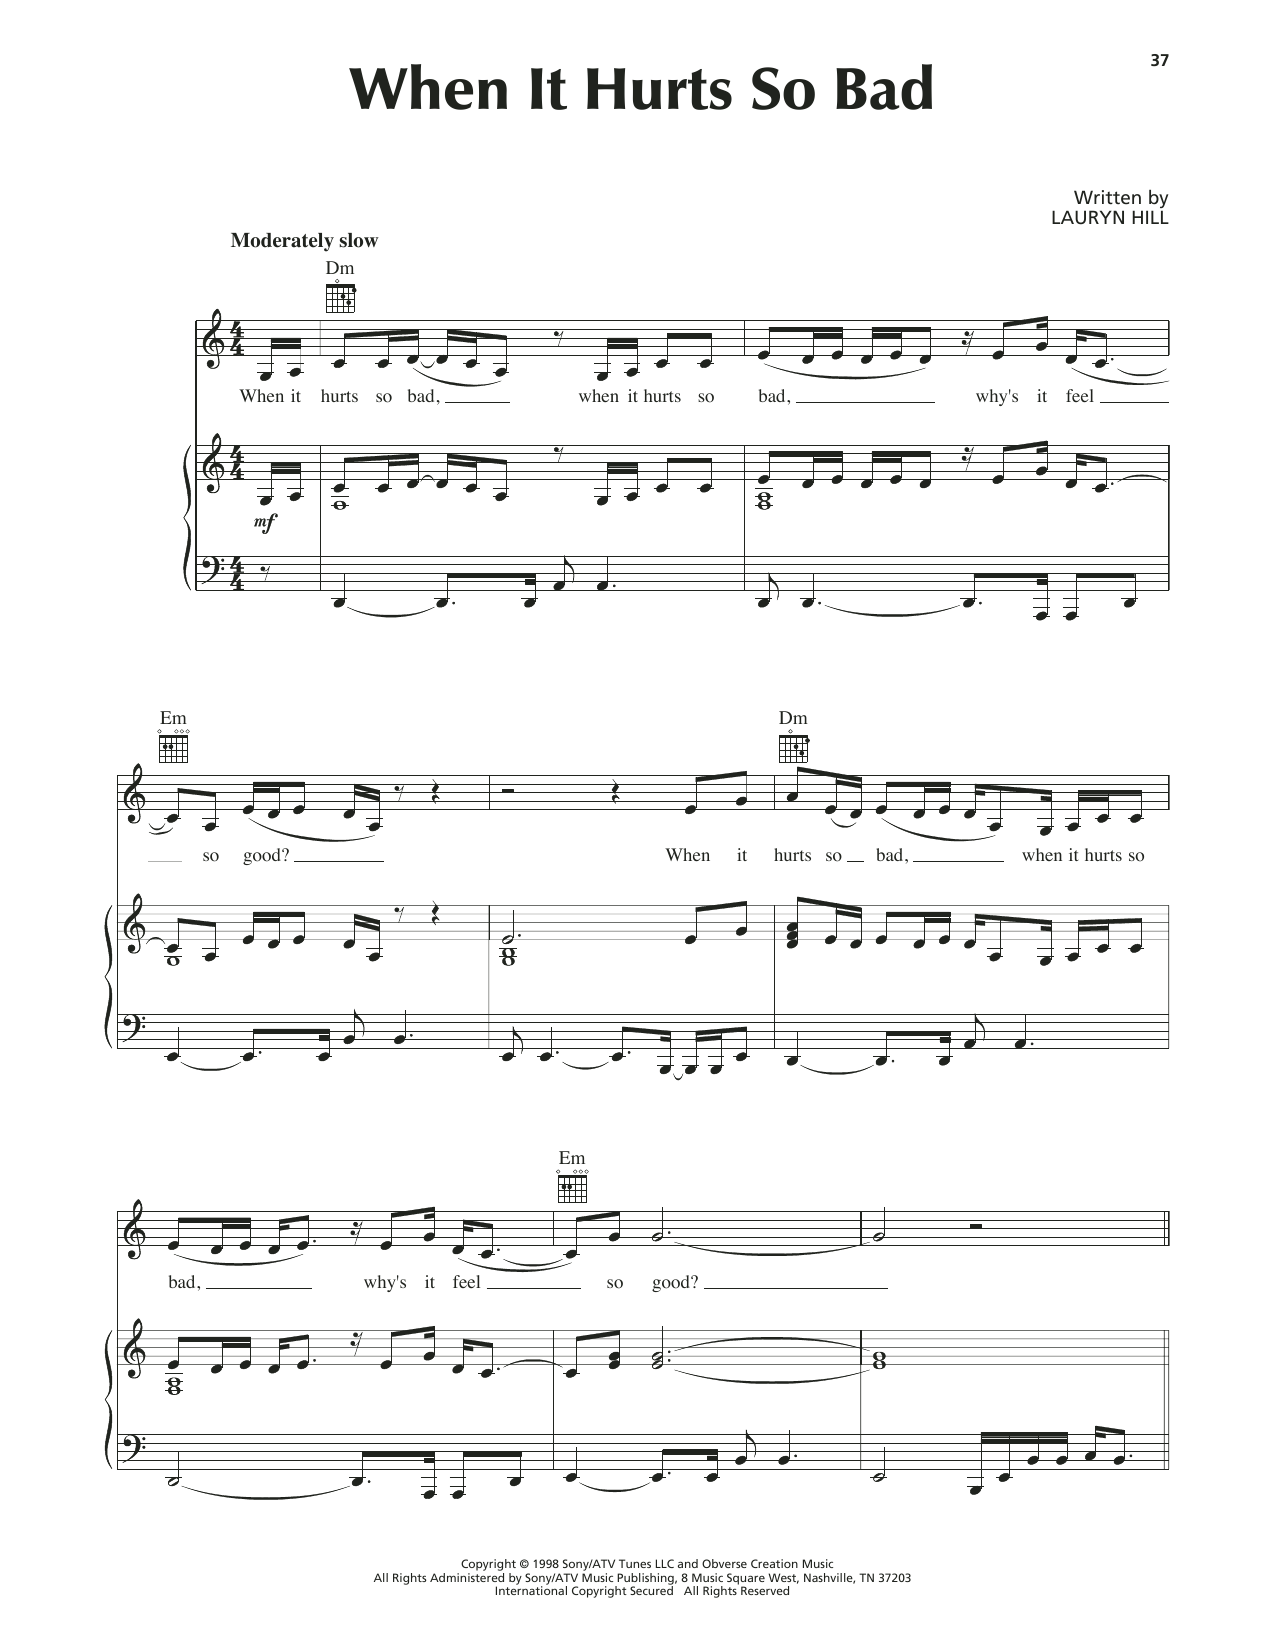 When It Hurts So Bad Sheet Music